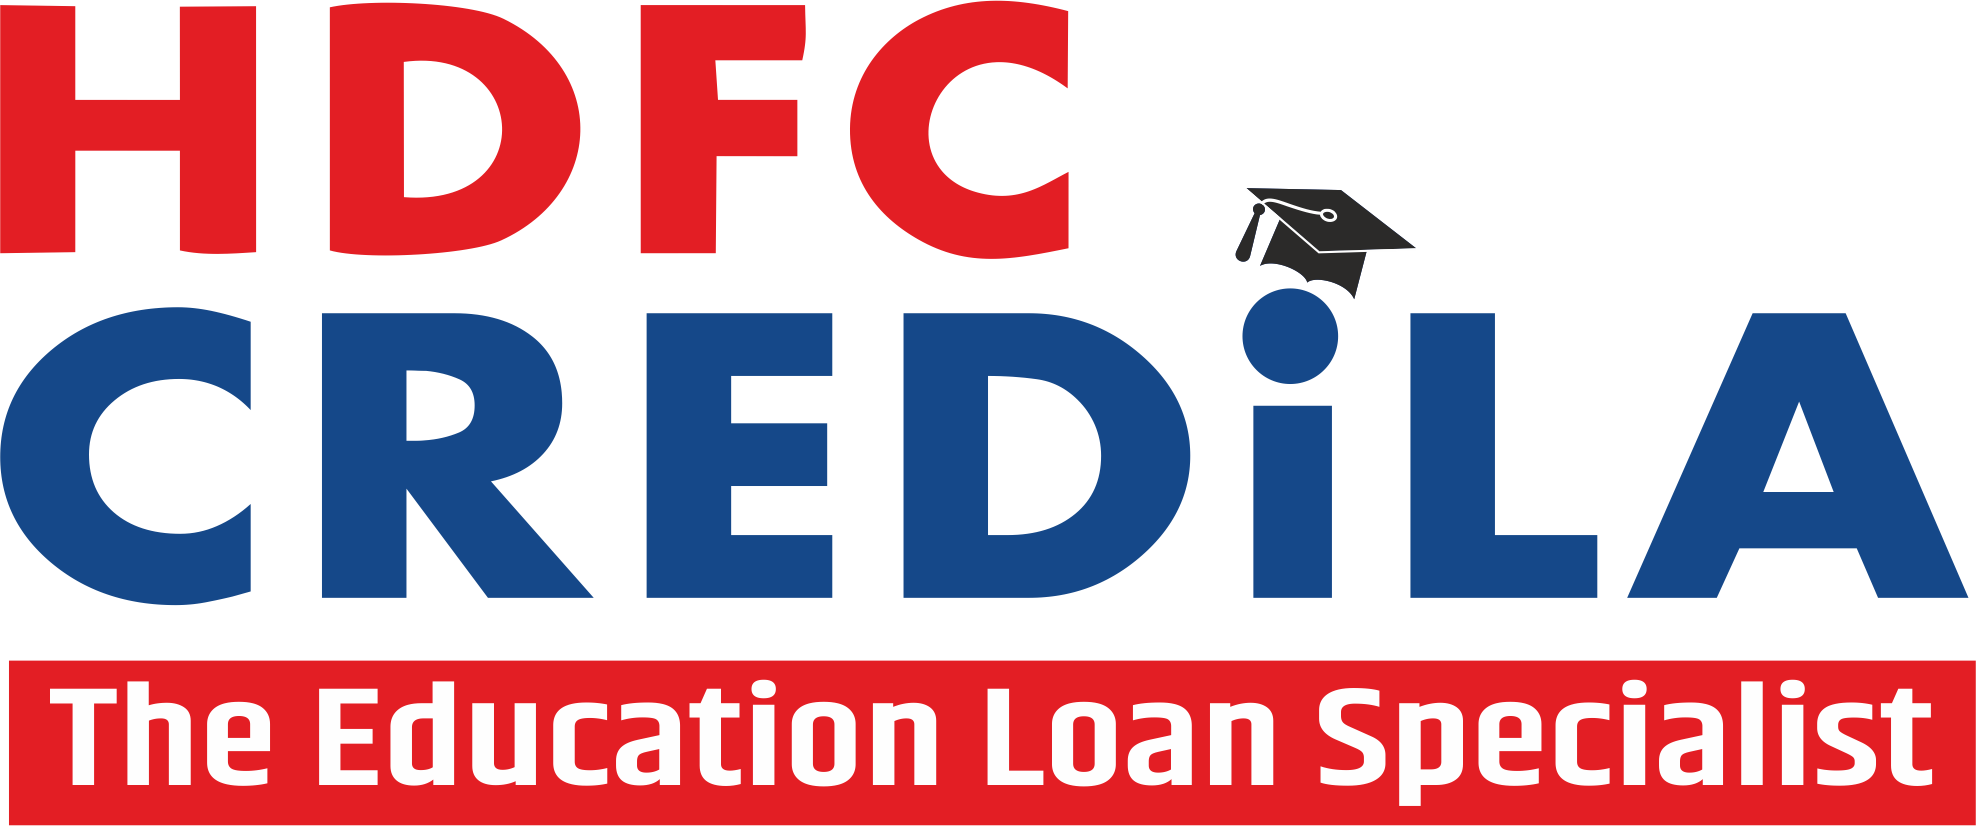 Direct link for HDFC CREDiLA loan application